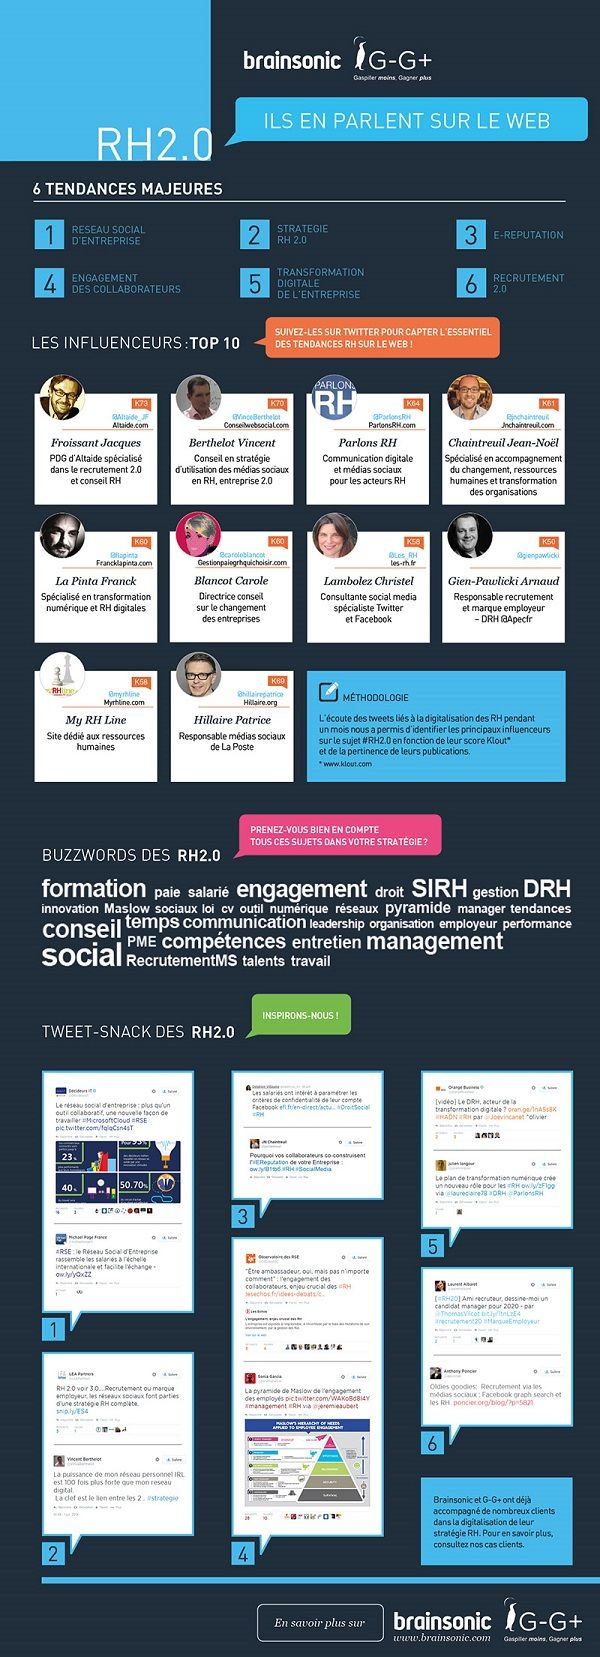 influenceurs-rh-brainsonic